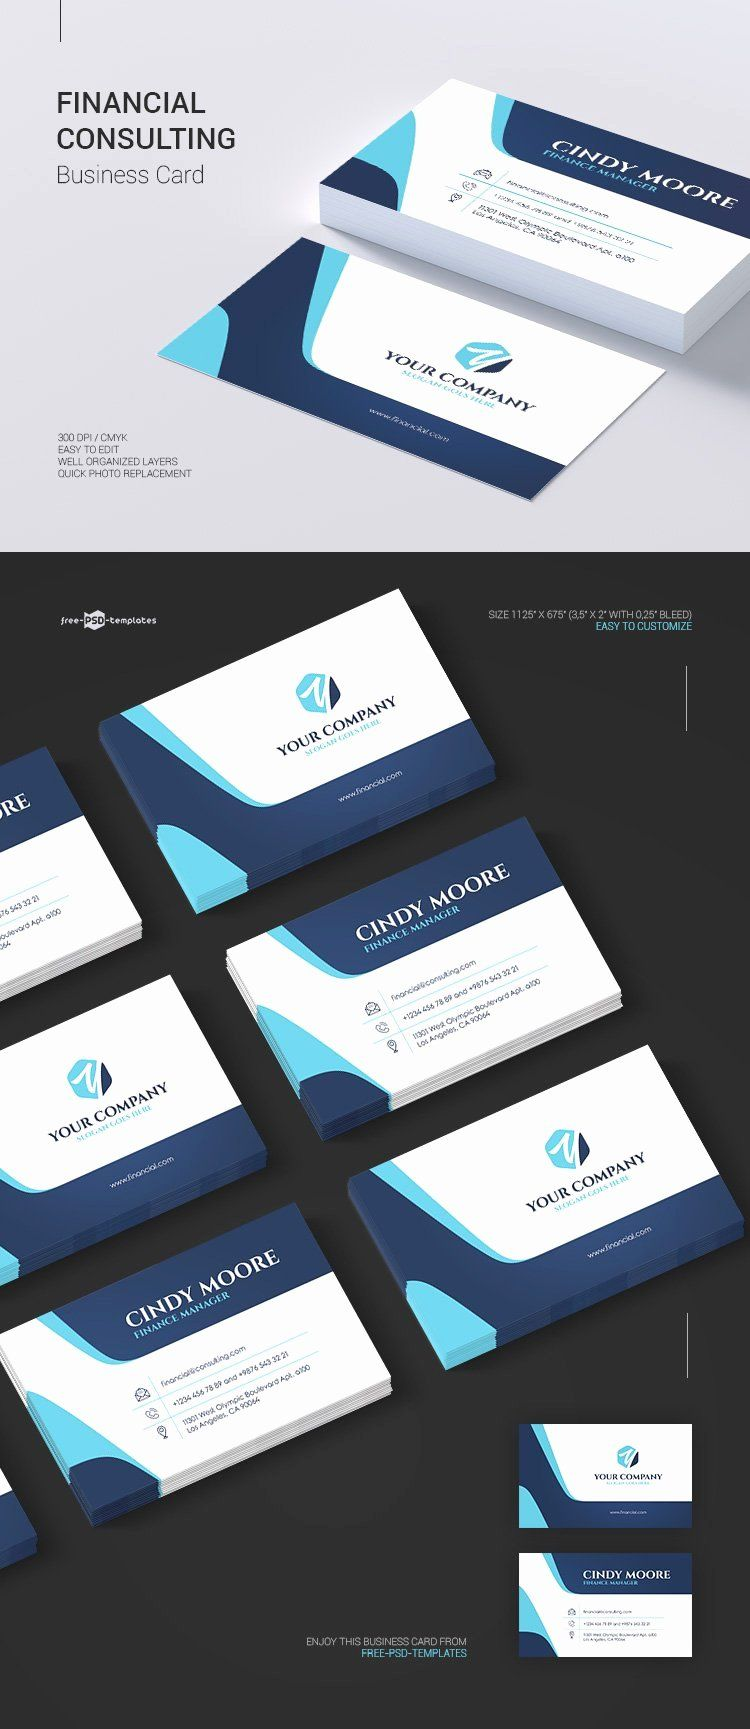 Folded Business Cards Template Fresh Free Financial Consulting Business Free Business Card Templates Photography Business Cards Template Folded Business Cards